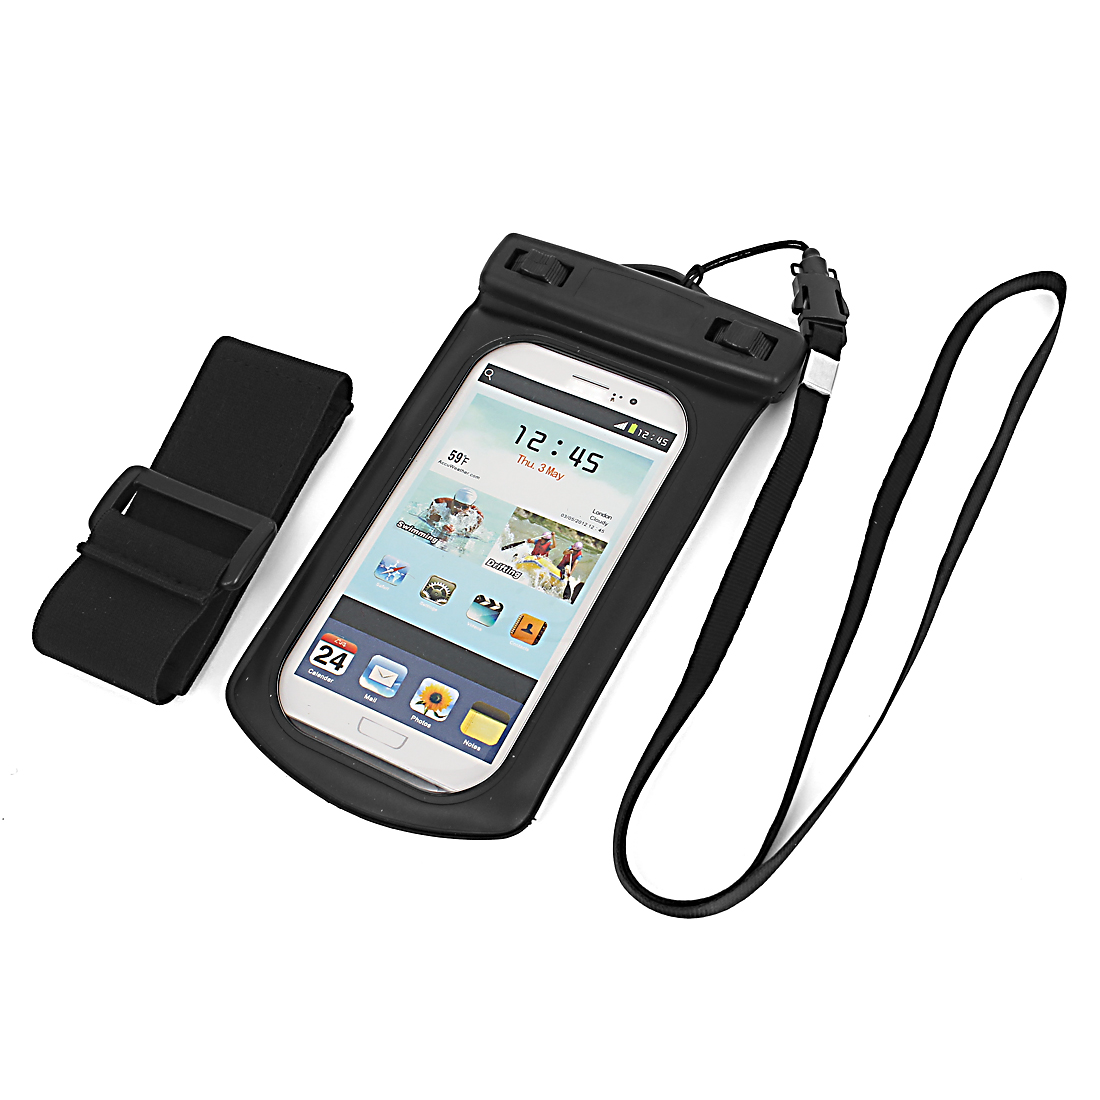 Waterproof Case Dry Bag Cover Skin Pouch Sleeve Black for Galaxy S3 i9300